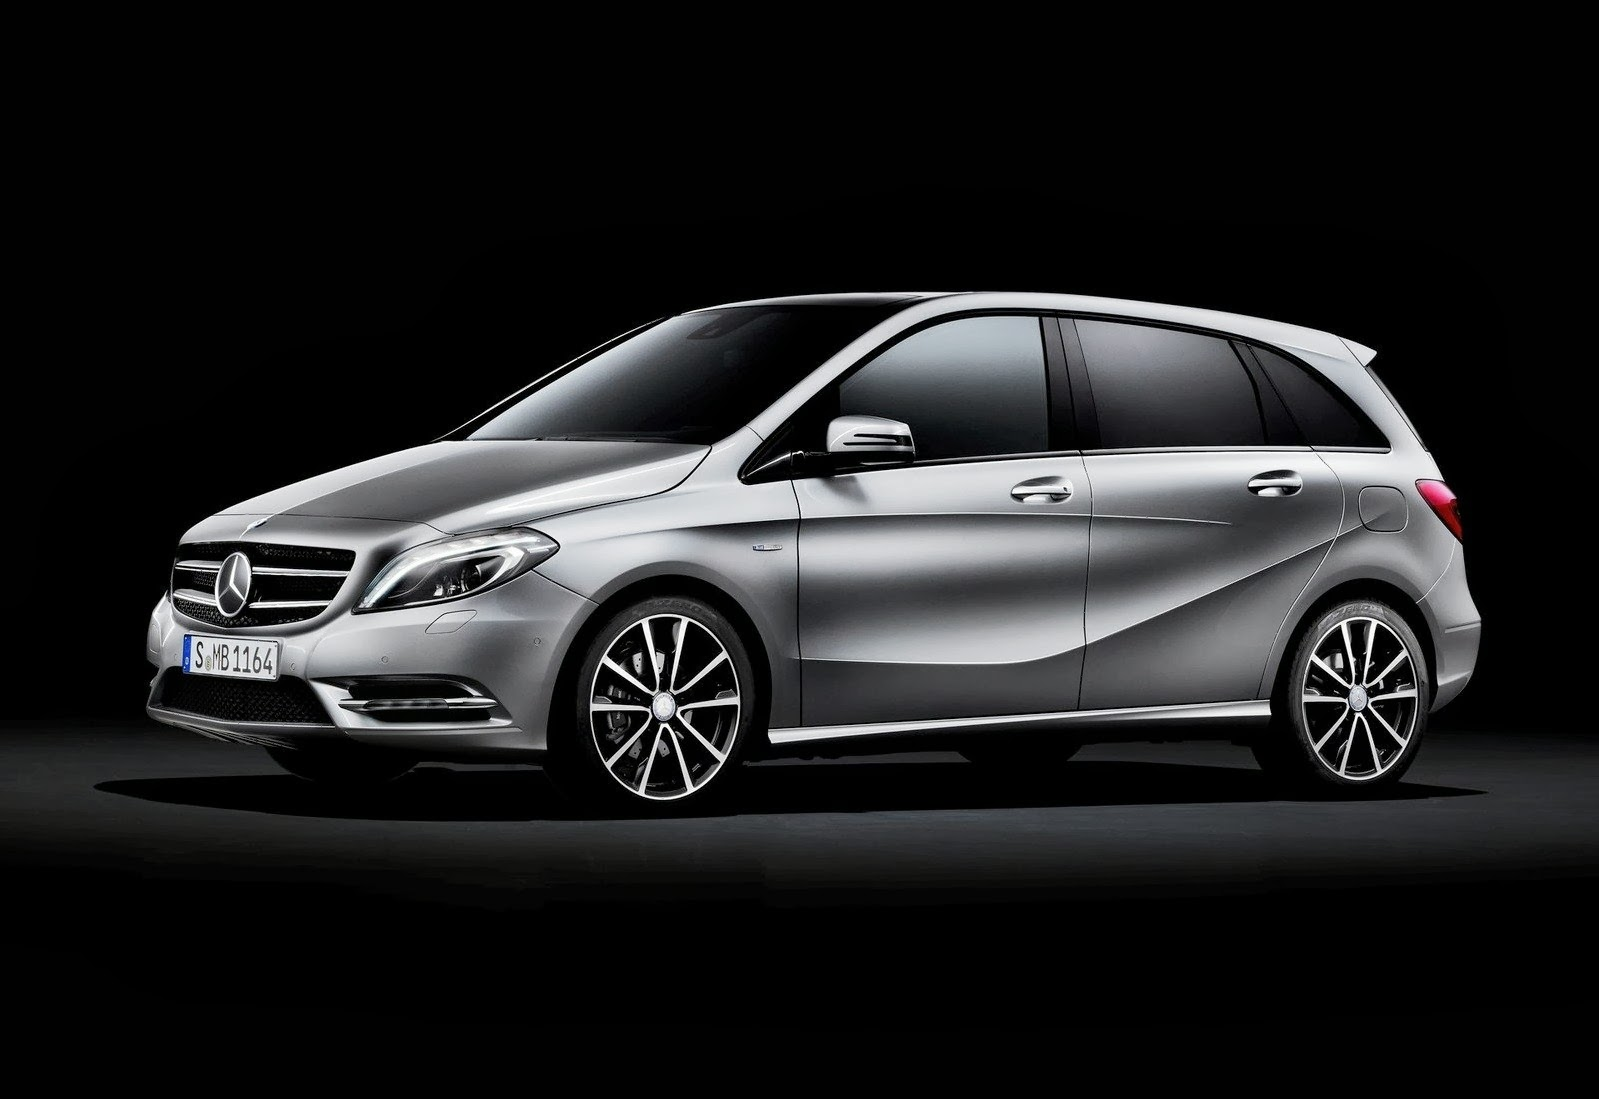 2014 mercedes benz b class prices specification photos for Mercedes benz bclass